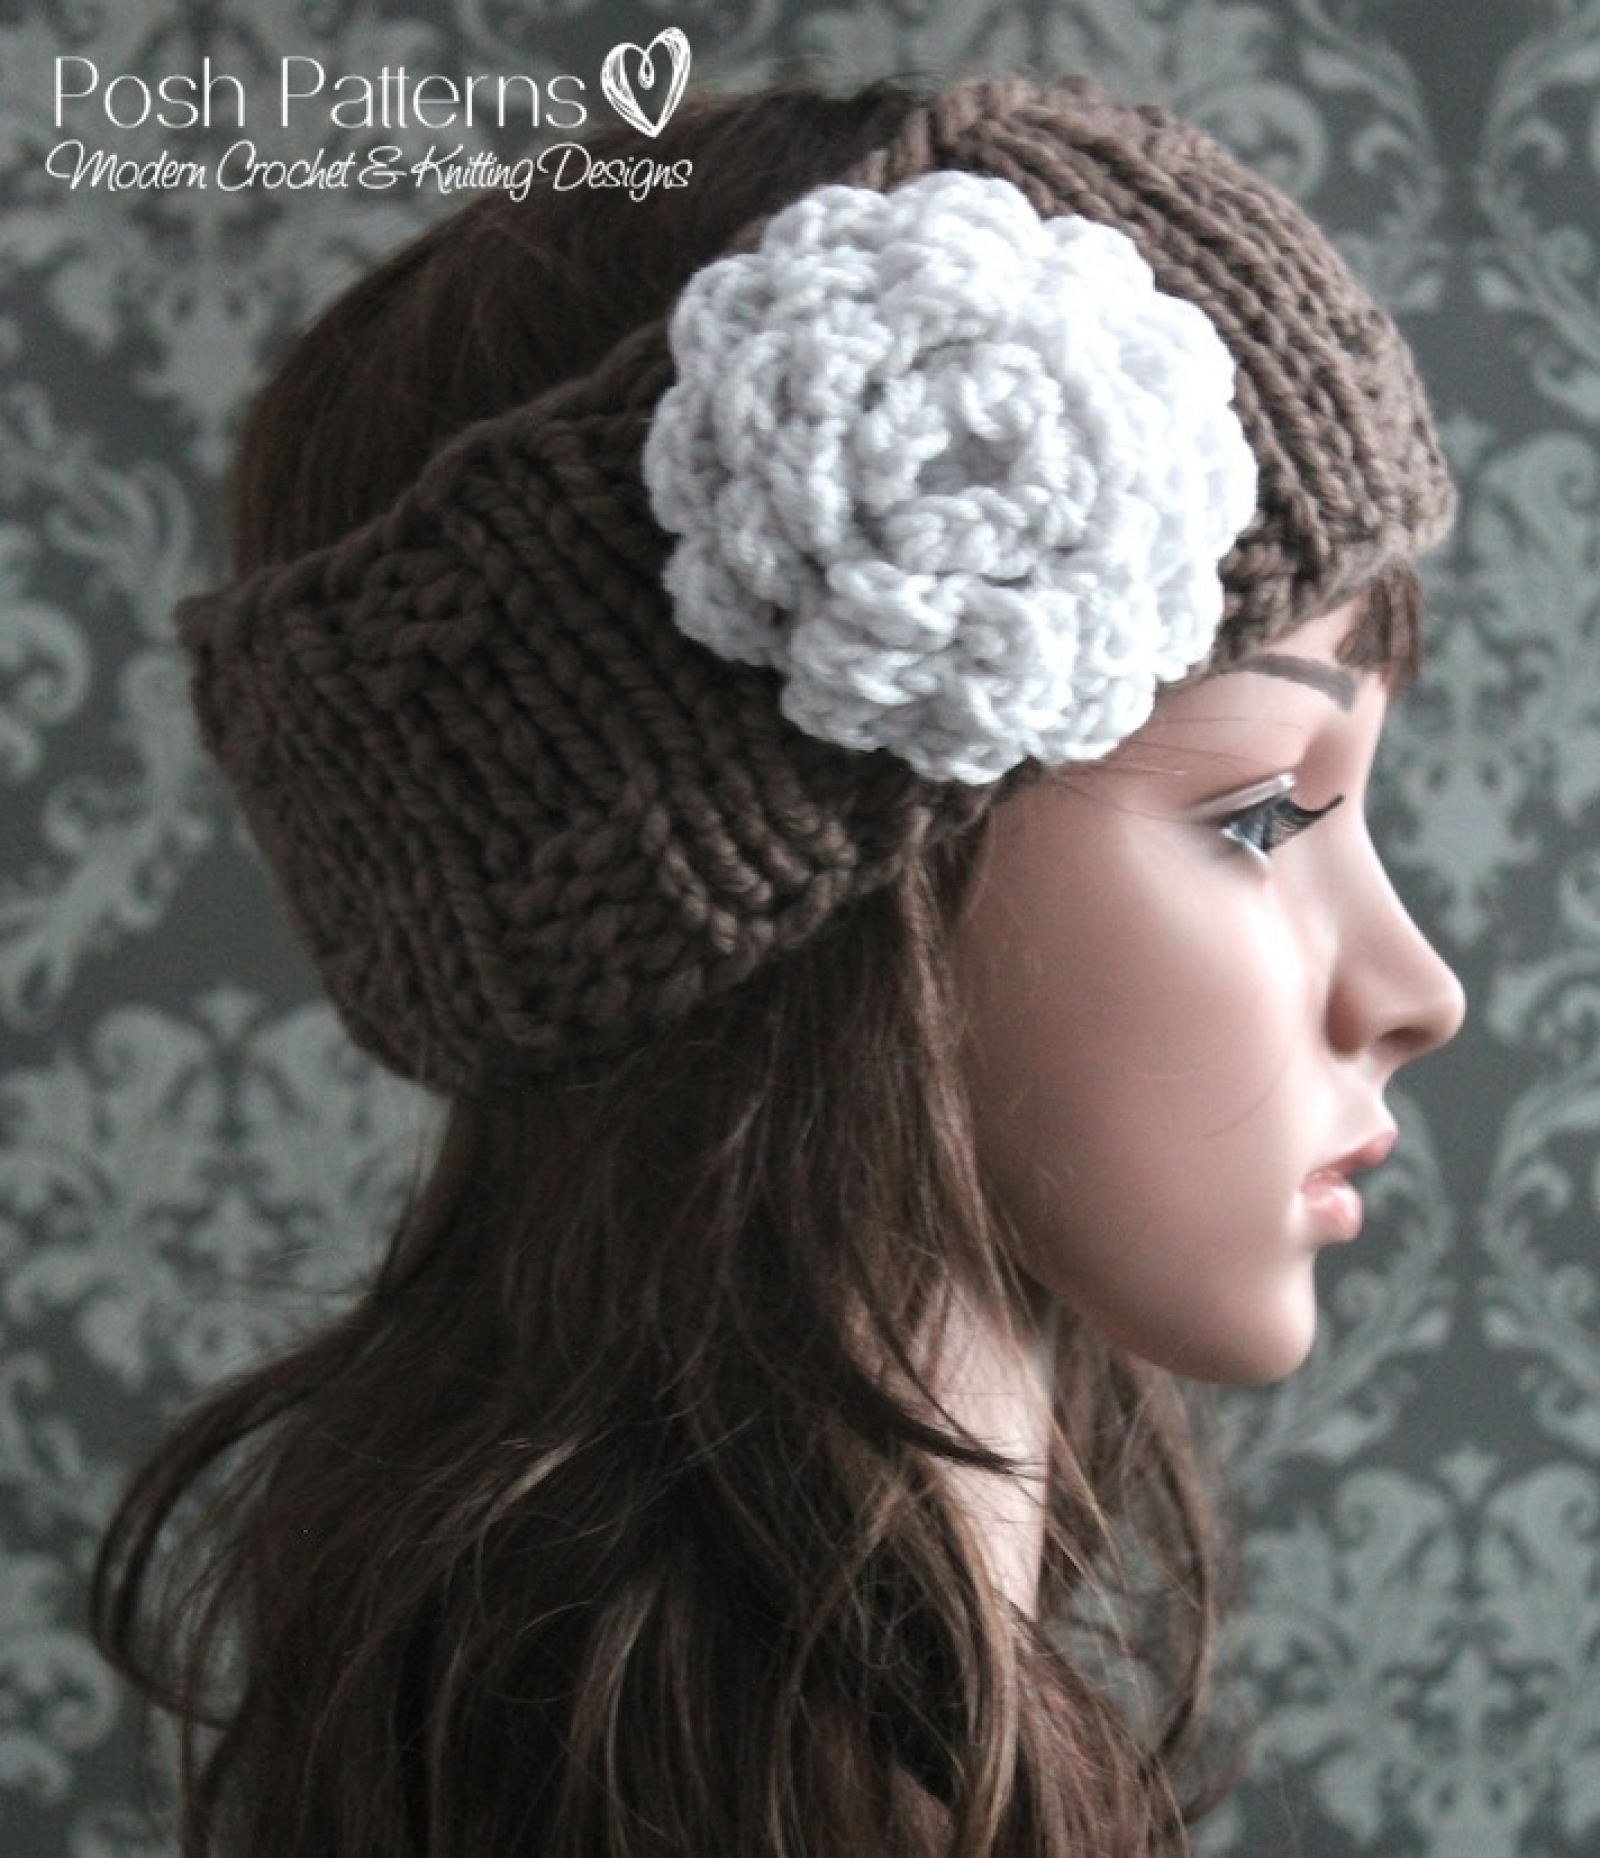 Knitting Pattern For A Headband With Flower : Headband Knitting Pattern - Knit Ear Warmer Pattern